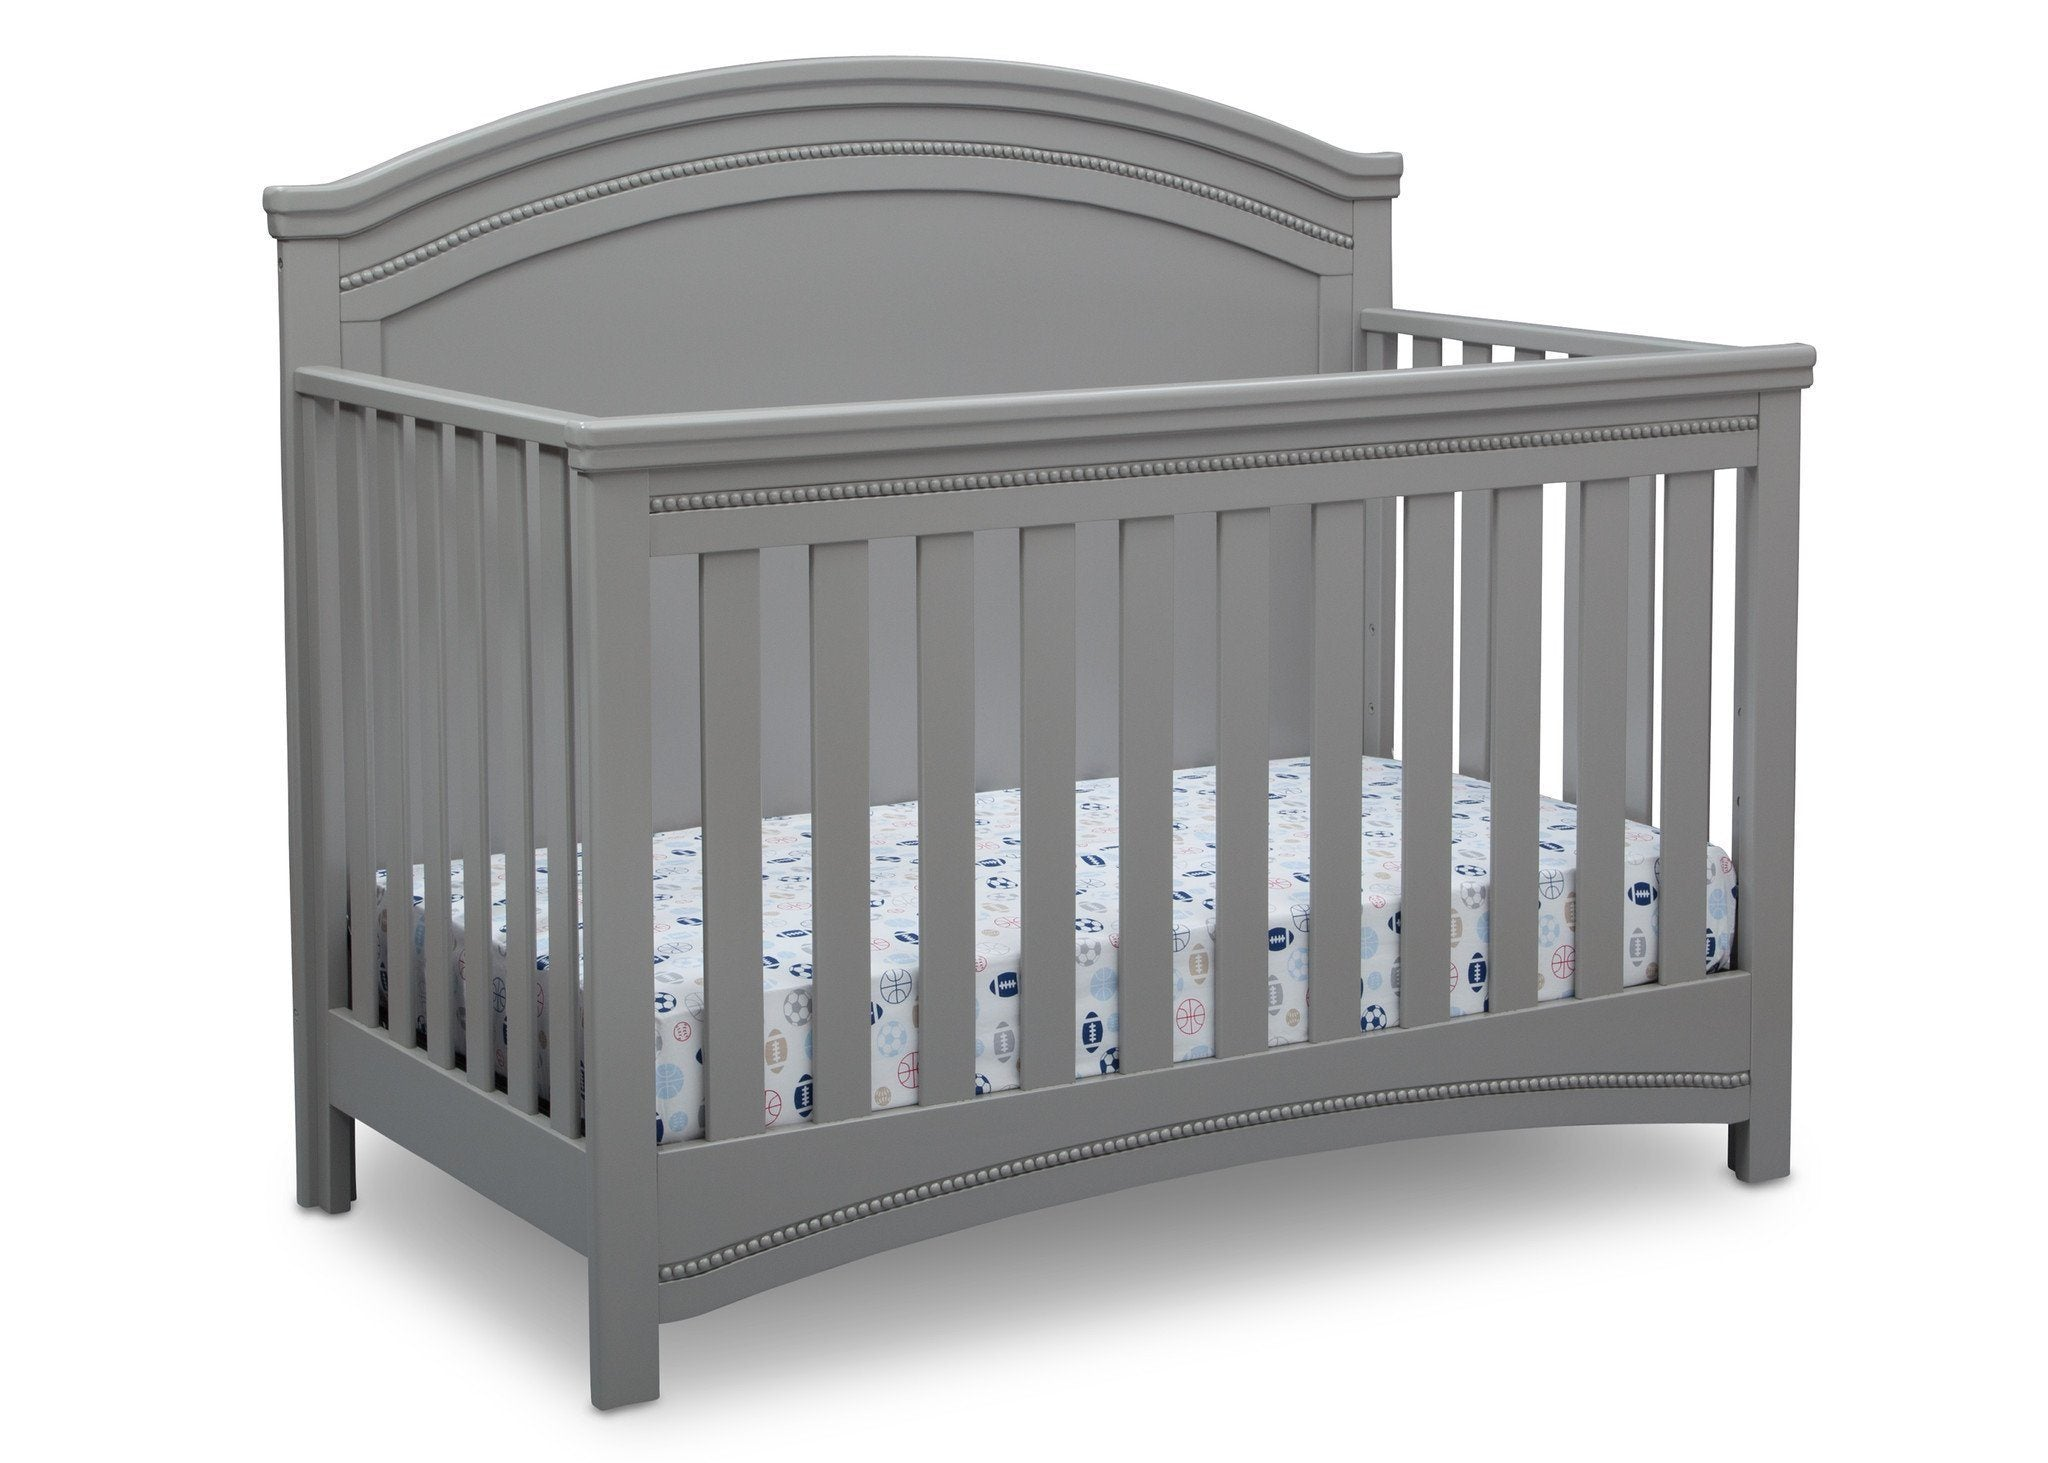 Simmons Kids Grey (026) Emma Crib 'N' More Right Facing View a3a